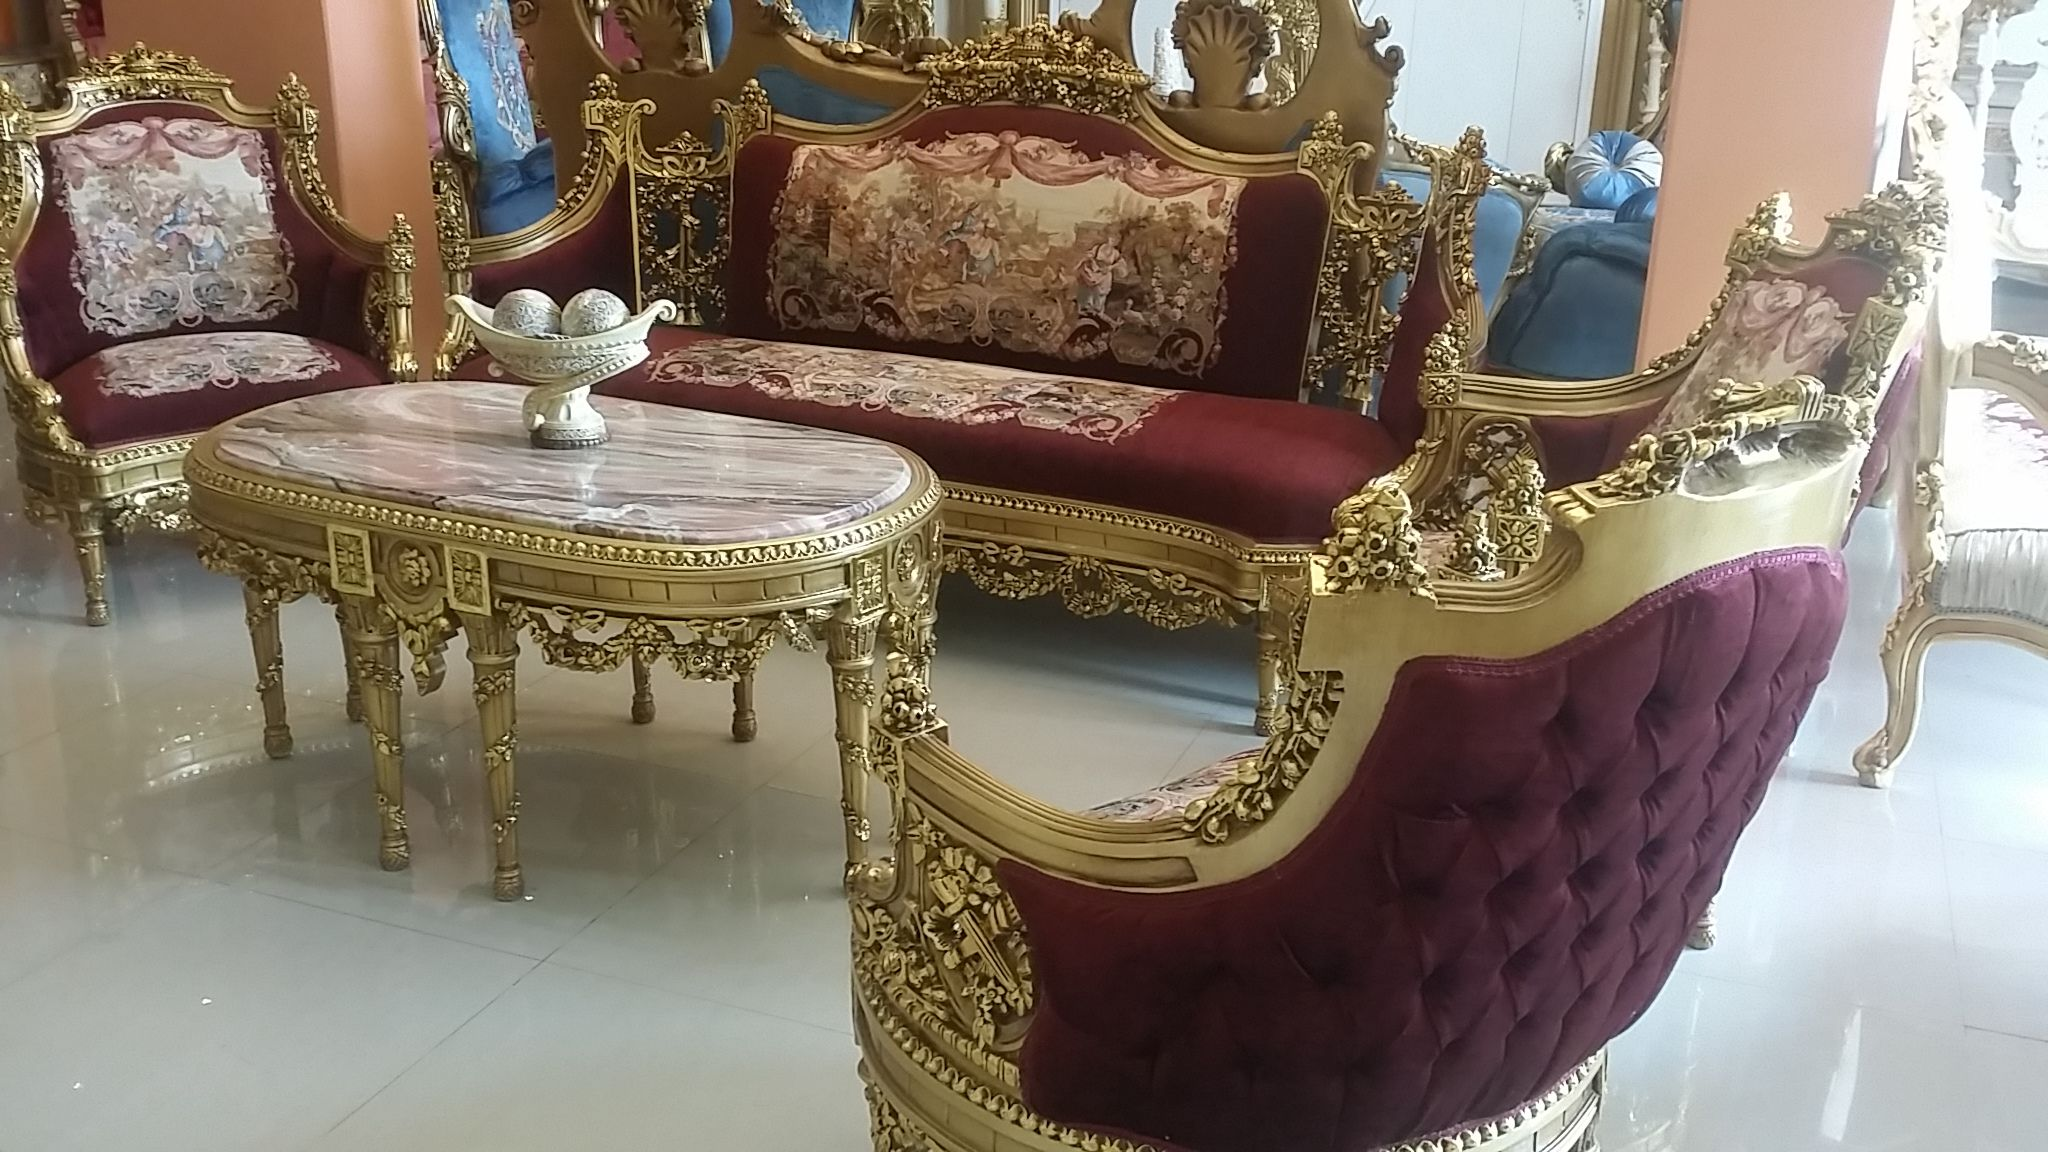 Exceptional Luxury Sofa, Wood Carving, Vintage Furniture, Cleveland, Salons, Sofas